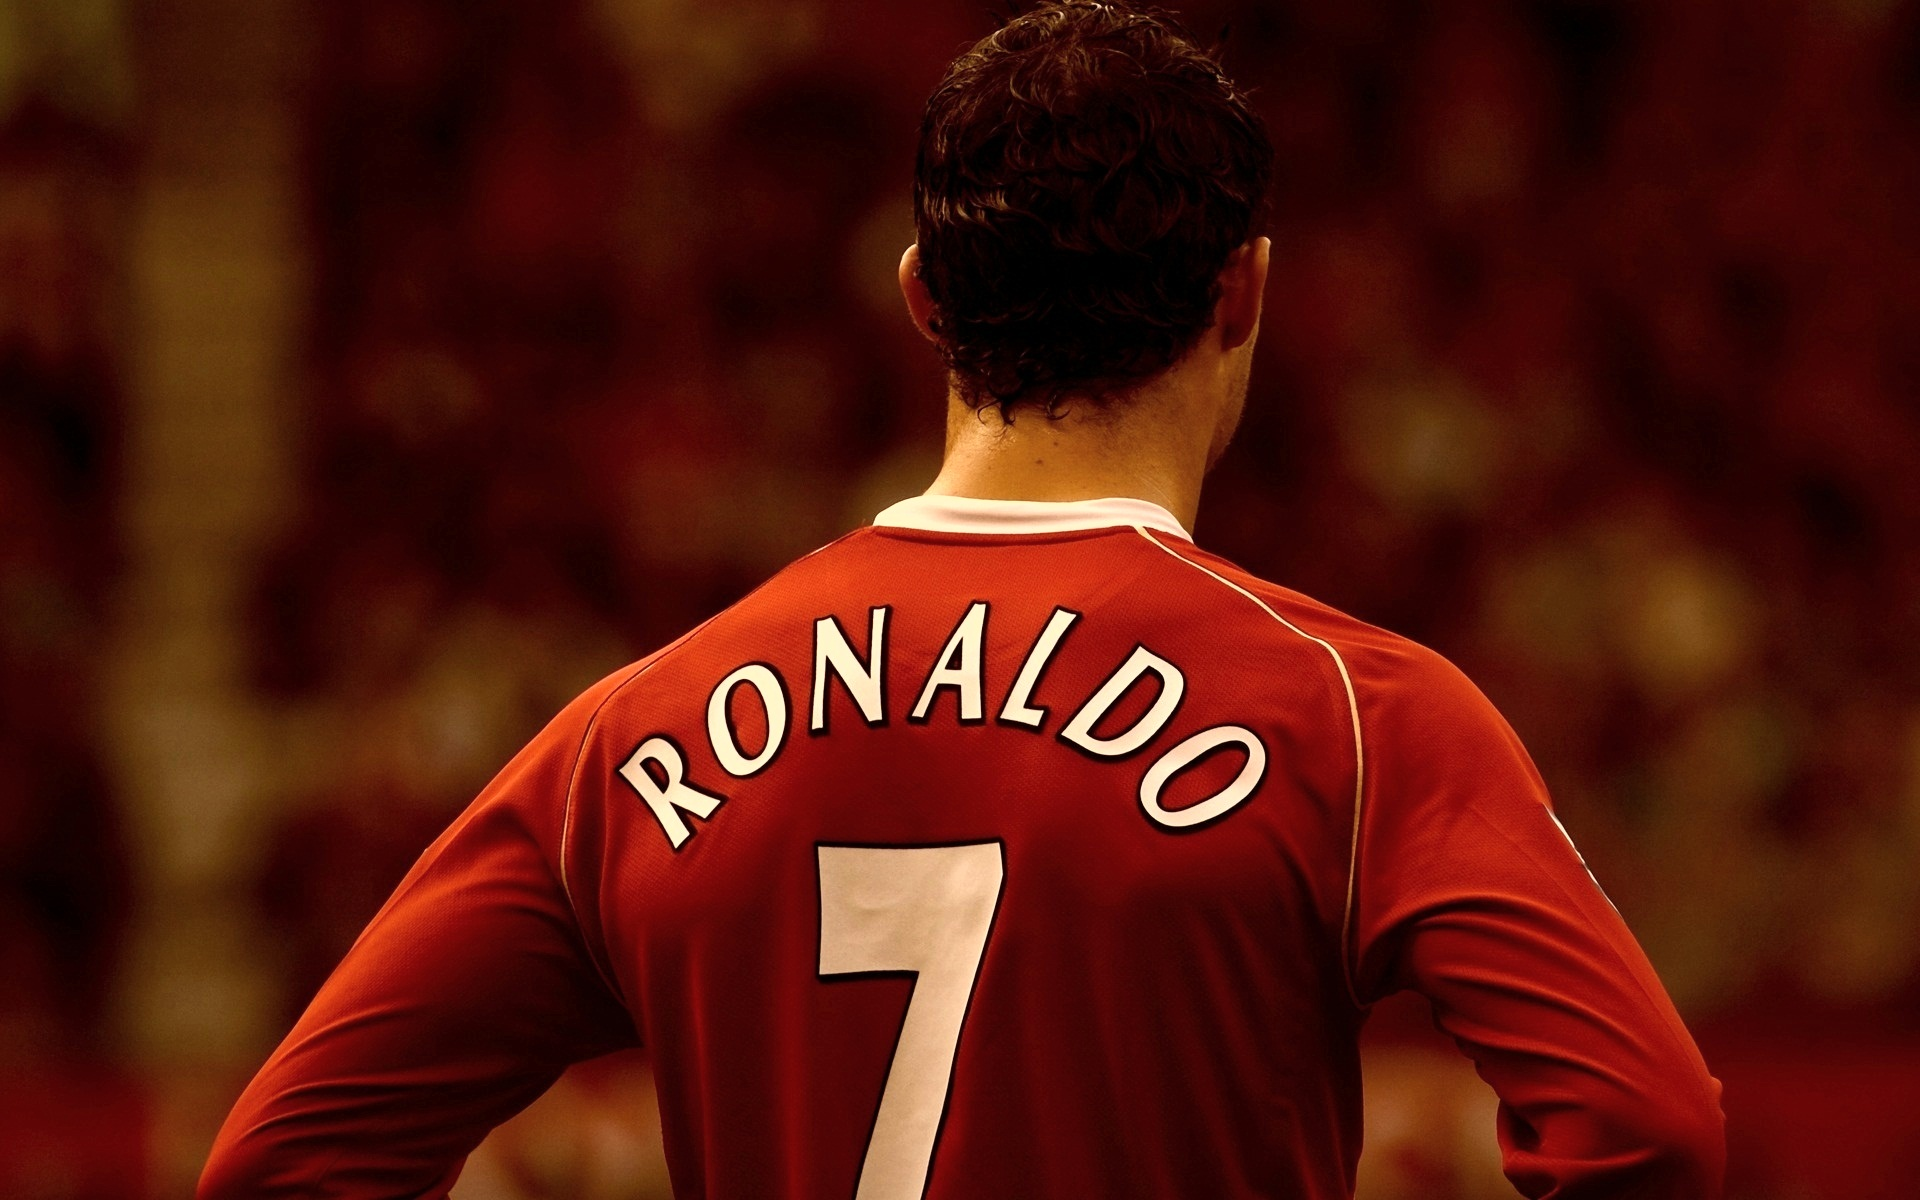 Nice Wallpapers With Quotes For Desktop Cristiano Ronaldo Wallpapers 2018